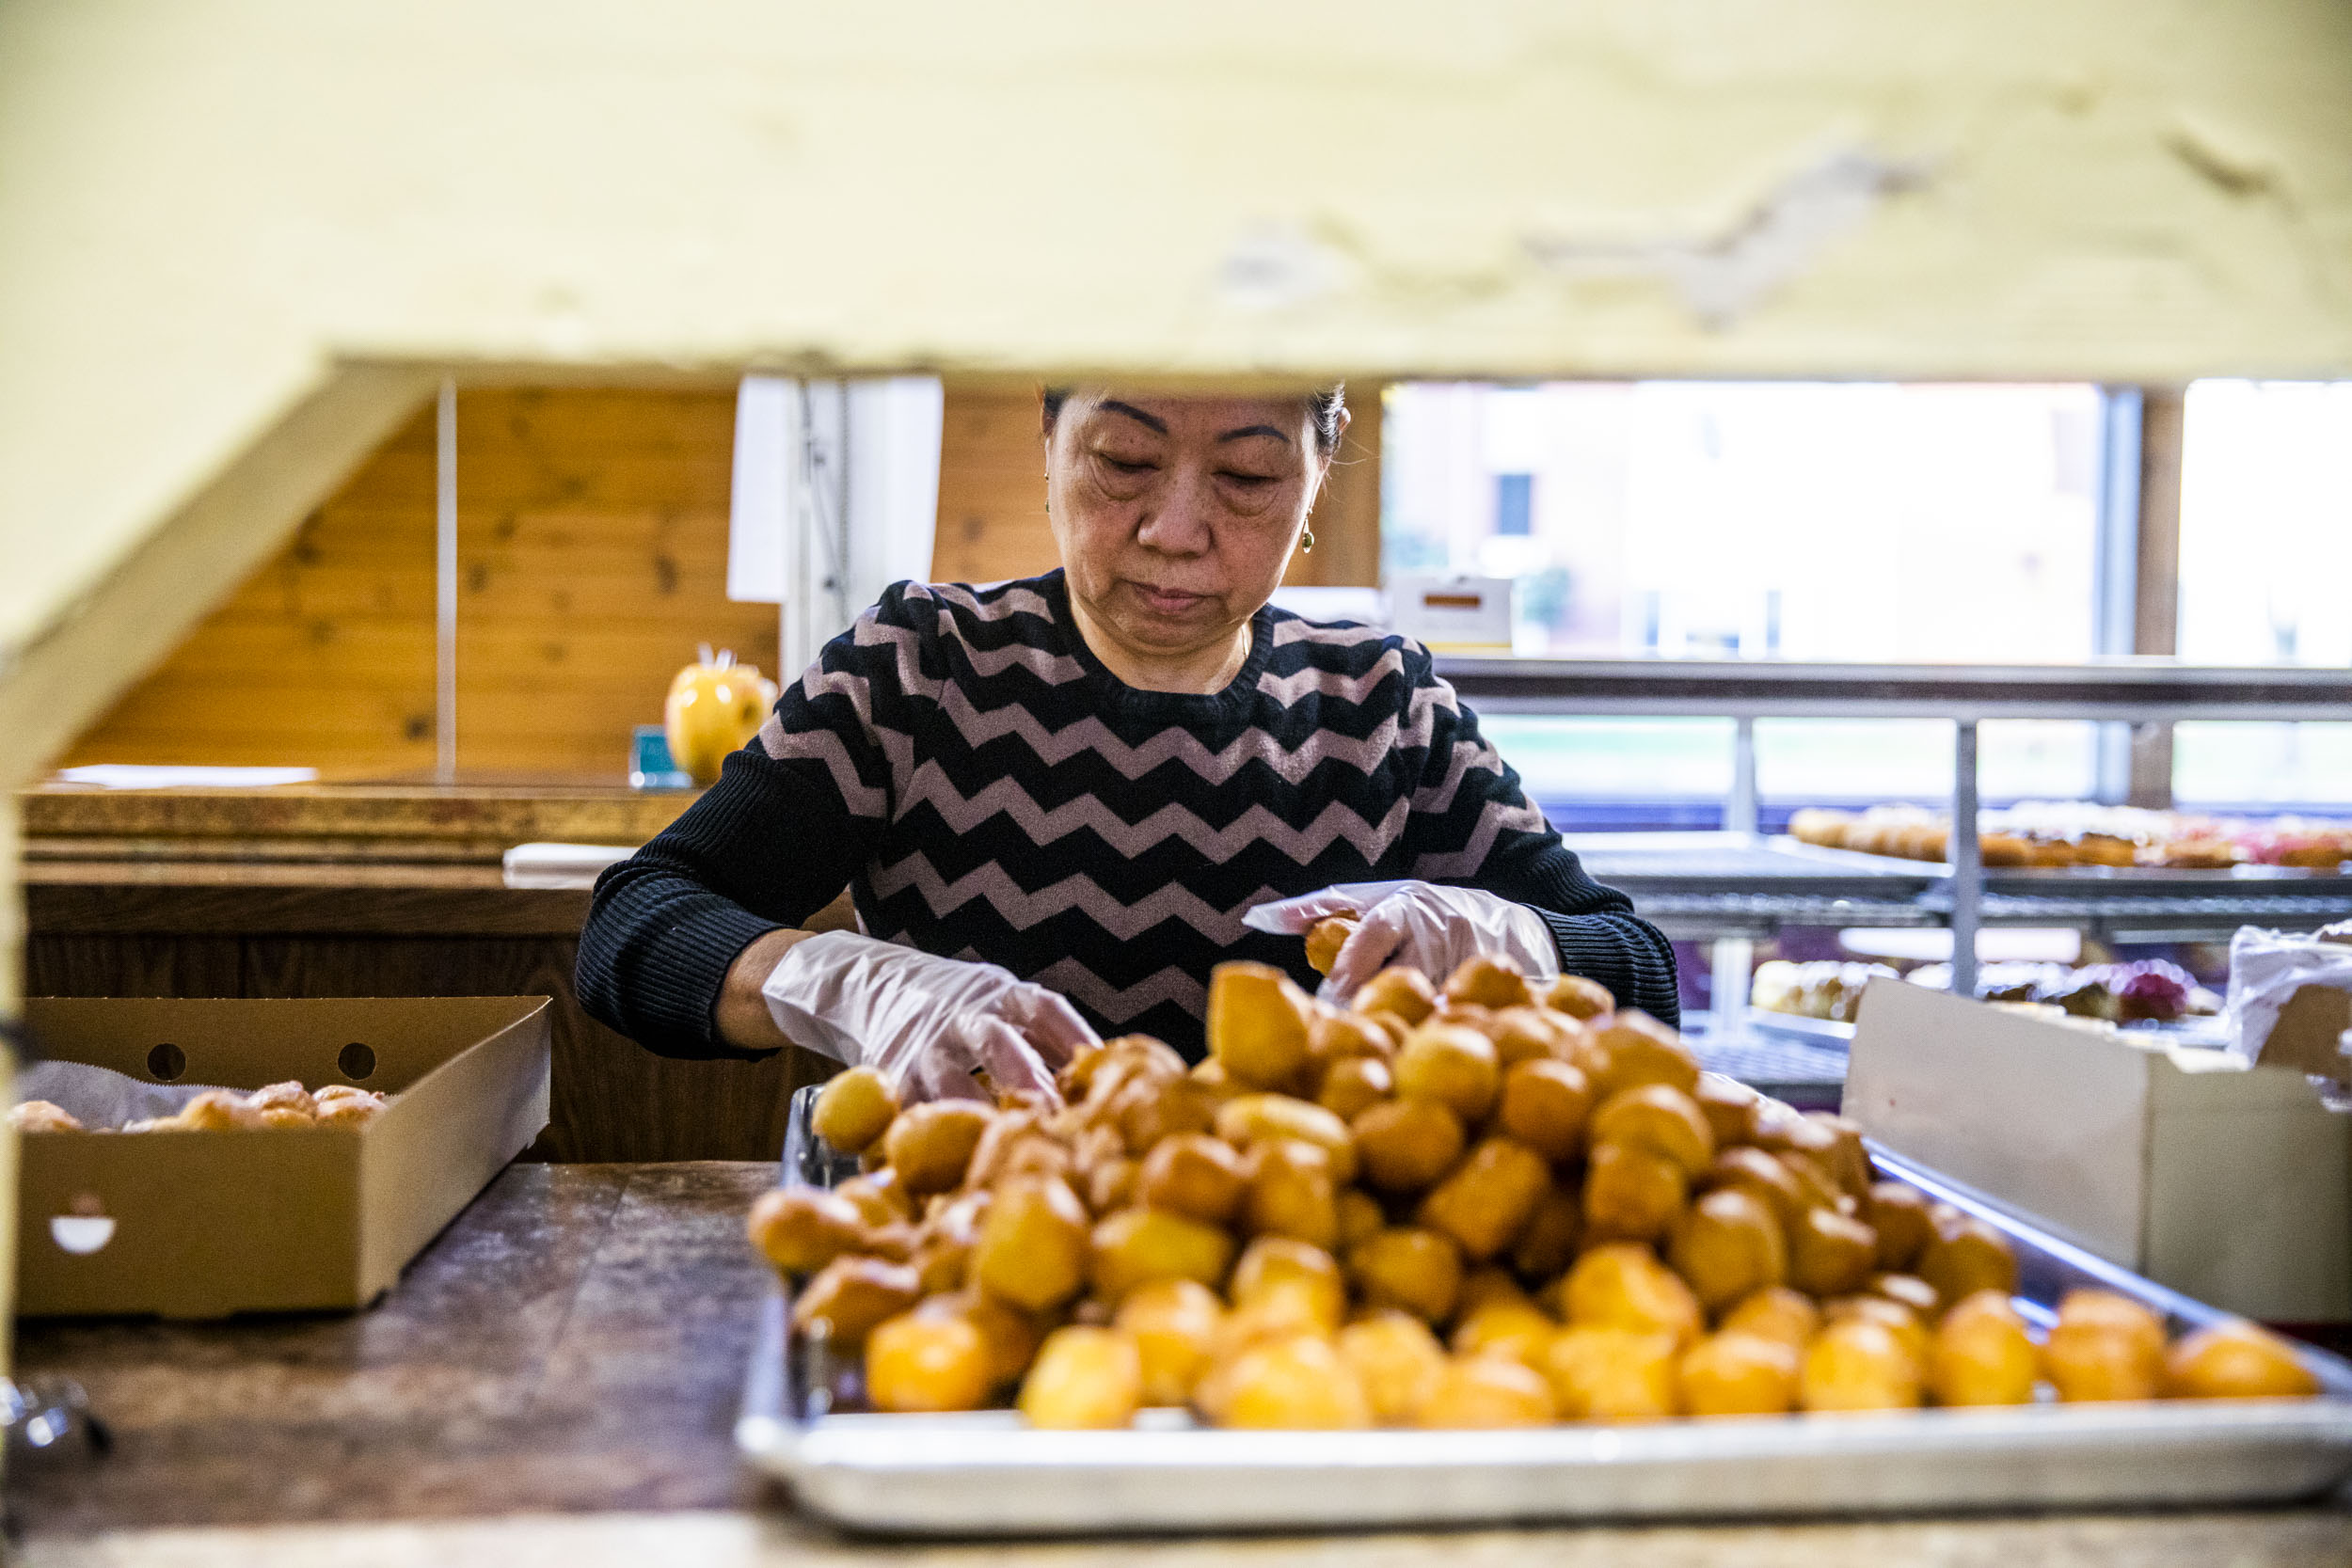 Owner Kim Sok fills a box with doughnuts at King Donuts in Rainier Beach on Sunday, Nov. 18, 2018.